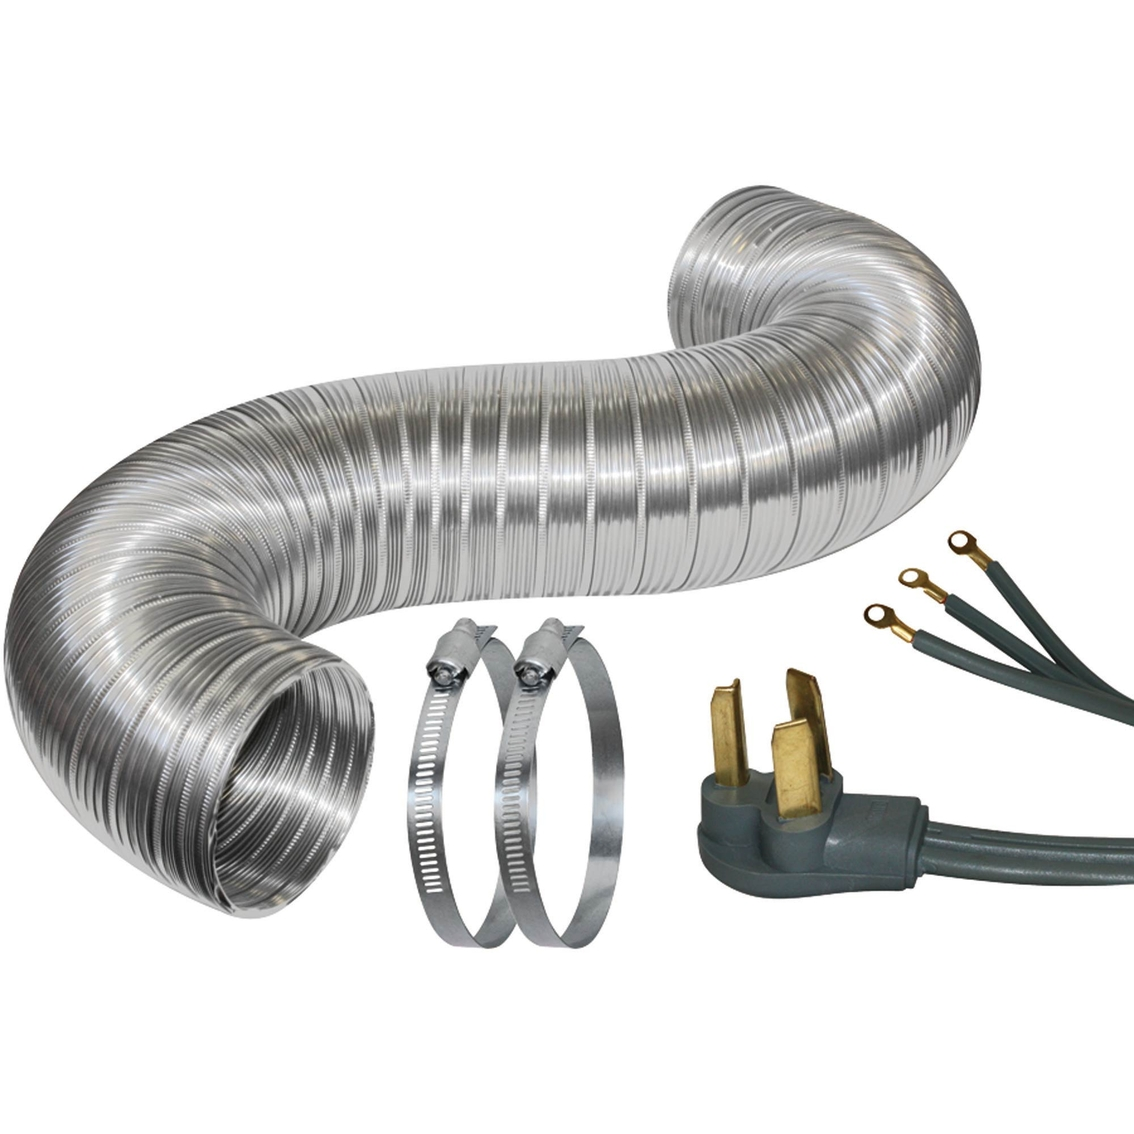 Dryer Vent Insulation Certified Appliance 5 Ft Dryer Duct Kit With 6 Ft 3 Wire Cord